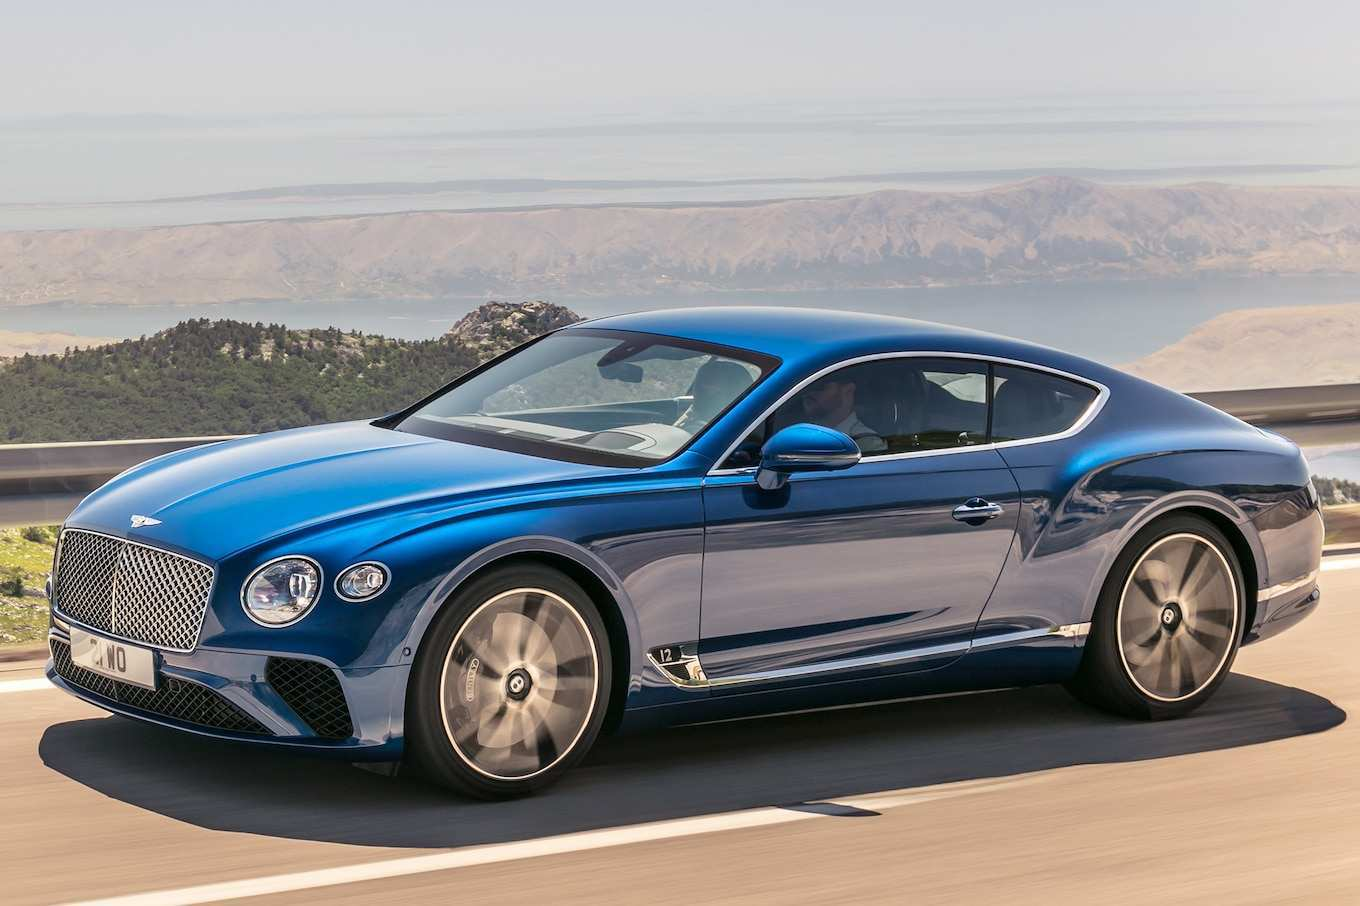 23 New 2019 Bentley Continental Gtc Performance and New Engine for 2019 Bentley Continental Gtc